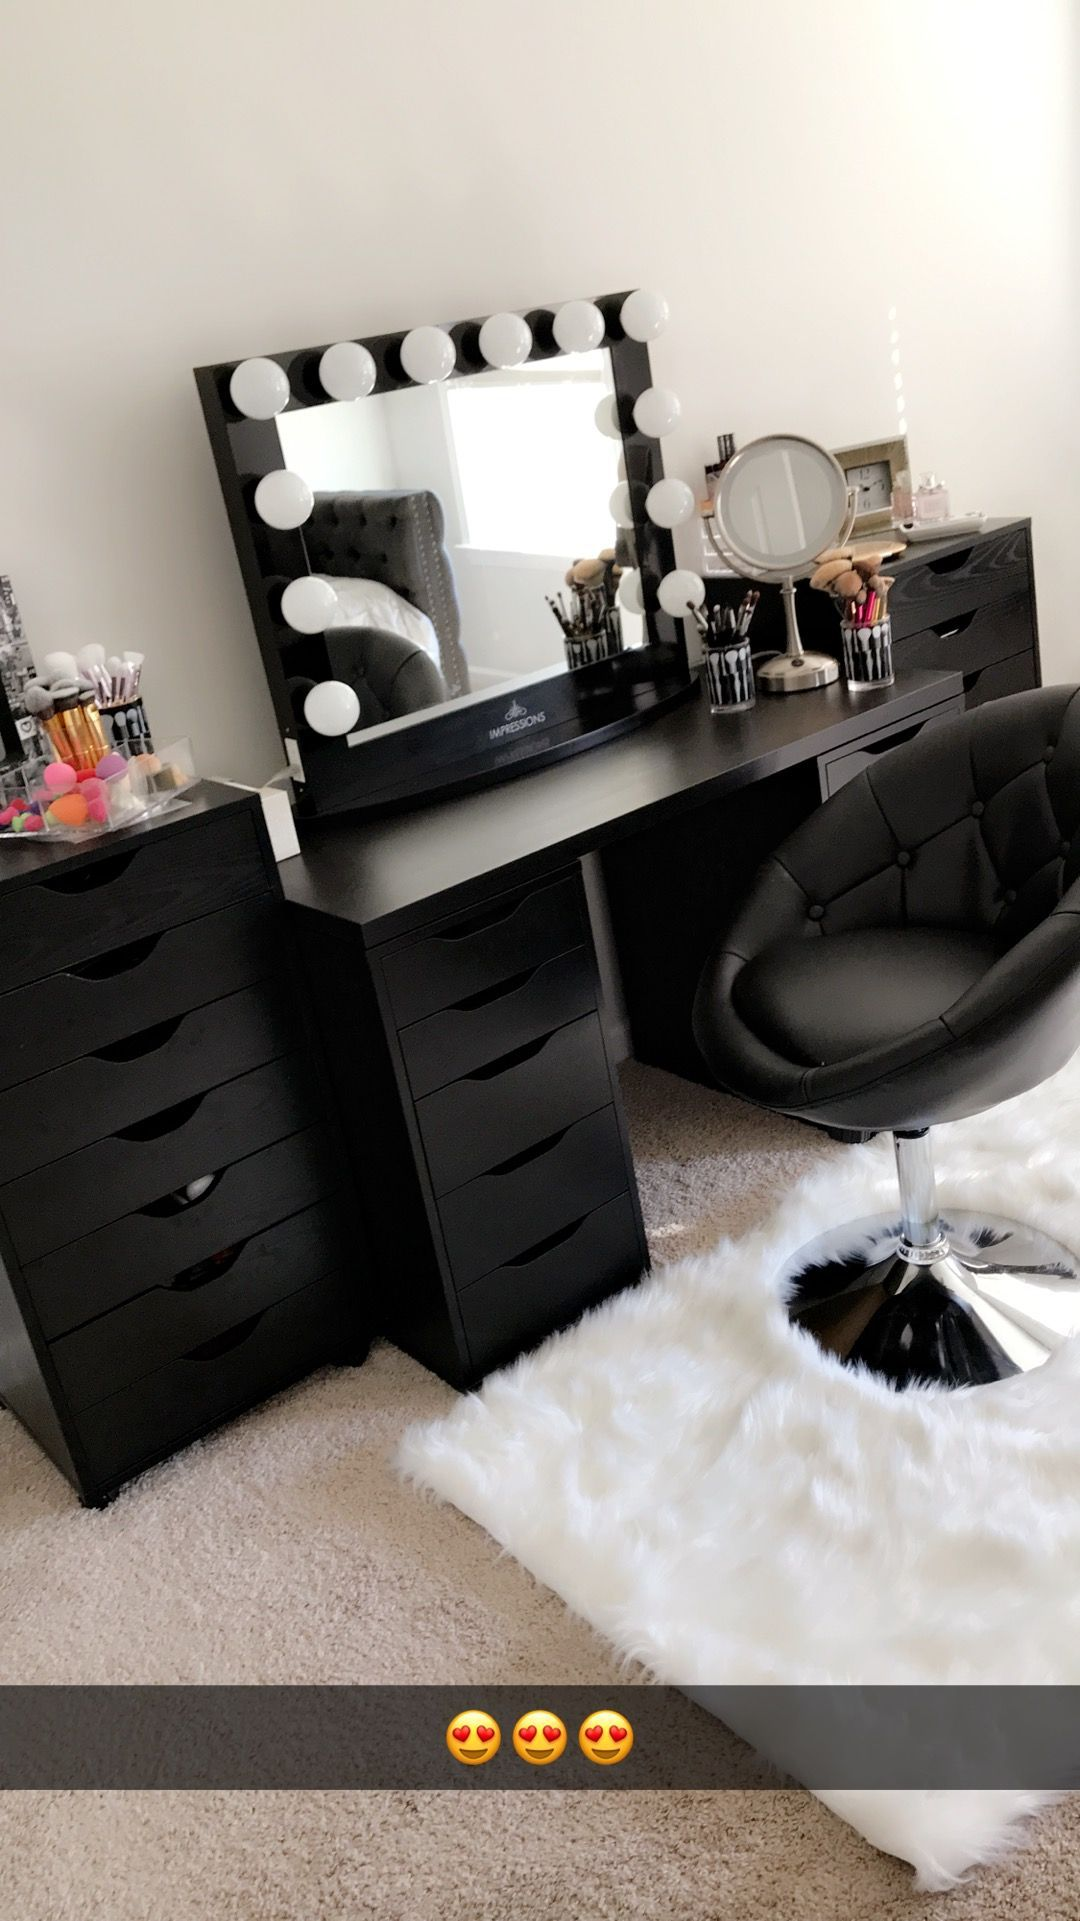 Beautiful black vanity makeup room has ikea alex drawers and